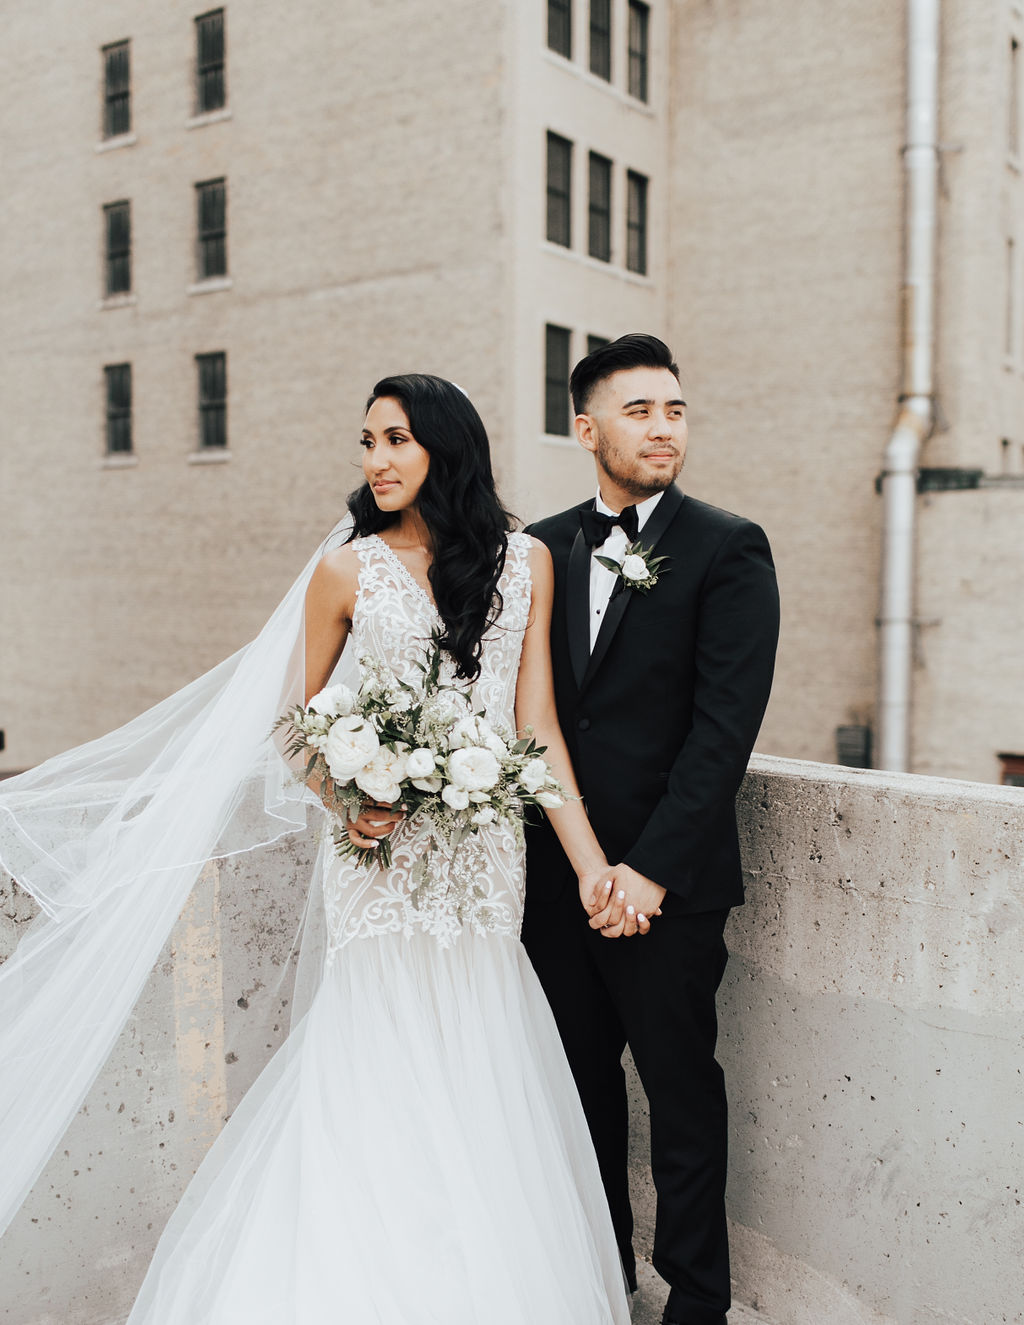 Modern and Organic Wedding in Winnipeg - Stone House Creative